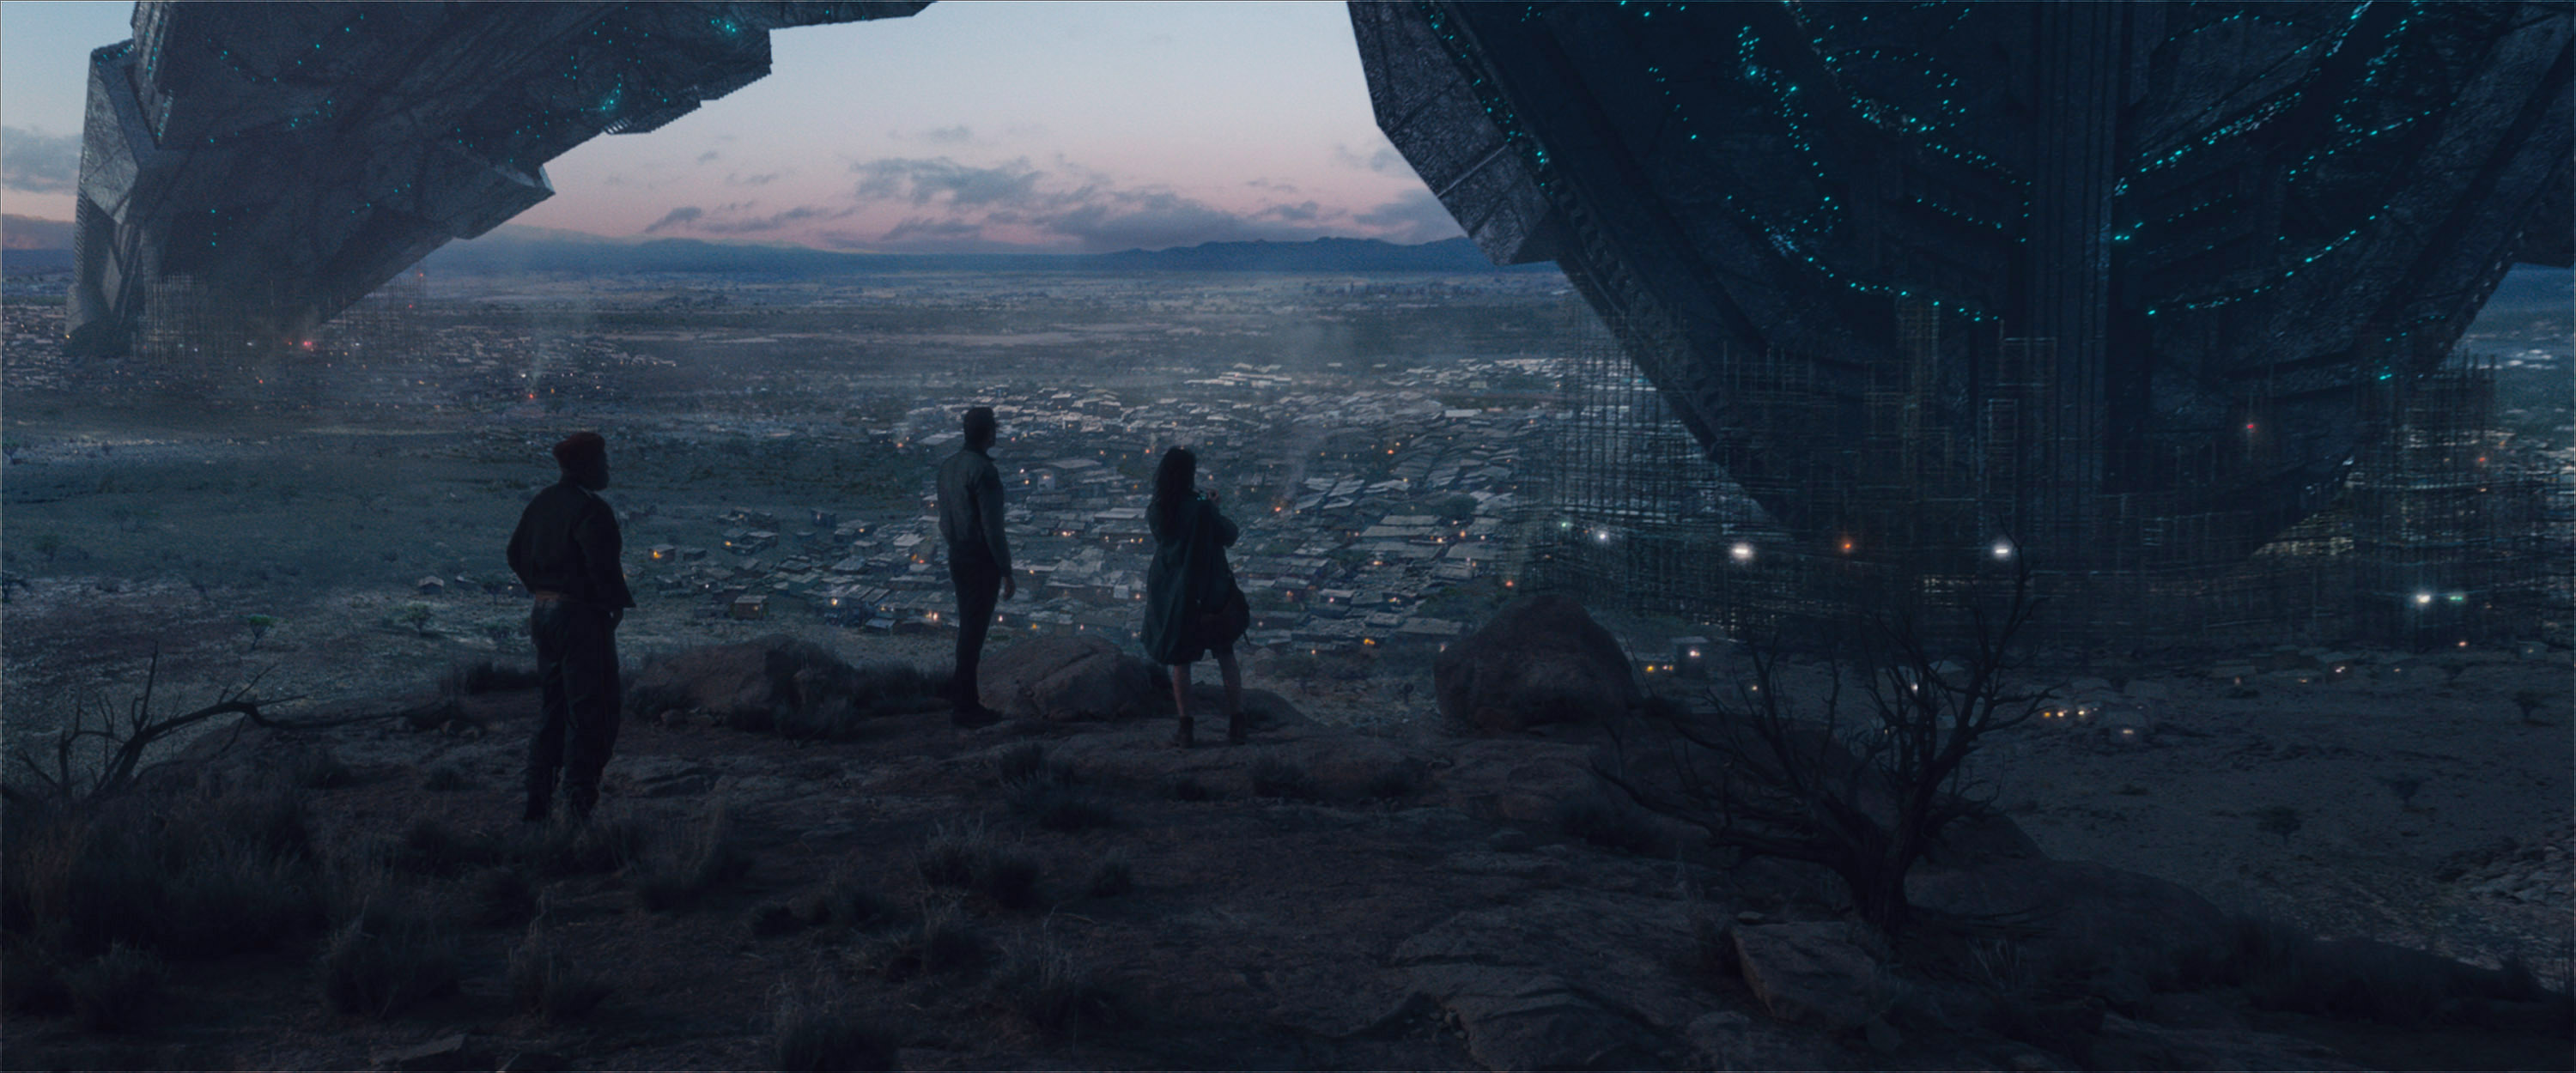 ID2_TR1_000_0030_ref_still-comp-01094_v0013r - Scientists survey the wreckage of a downed alien mothership. Photo Credit: Courtesy Twentieth Century Fox